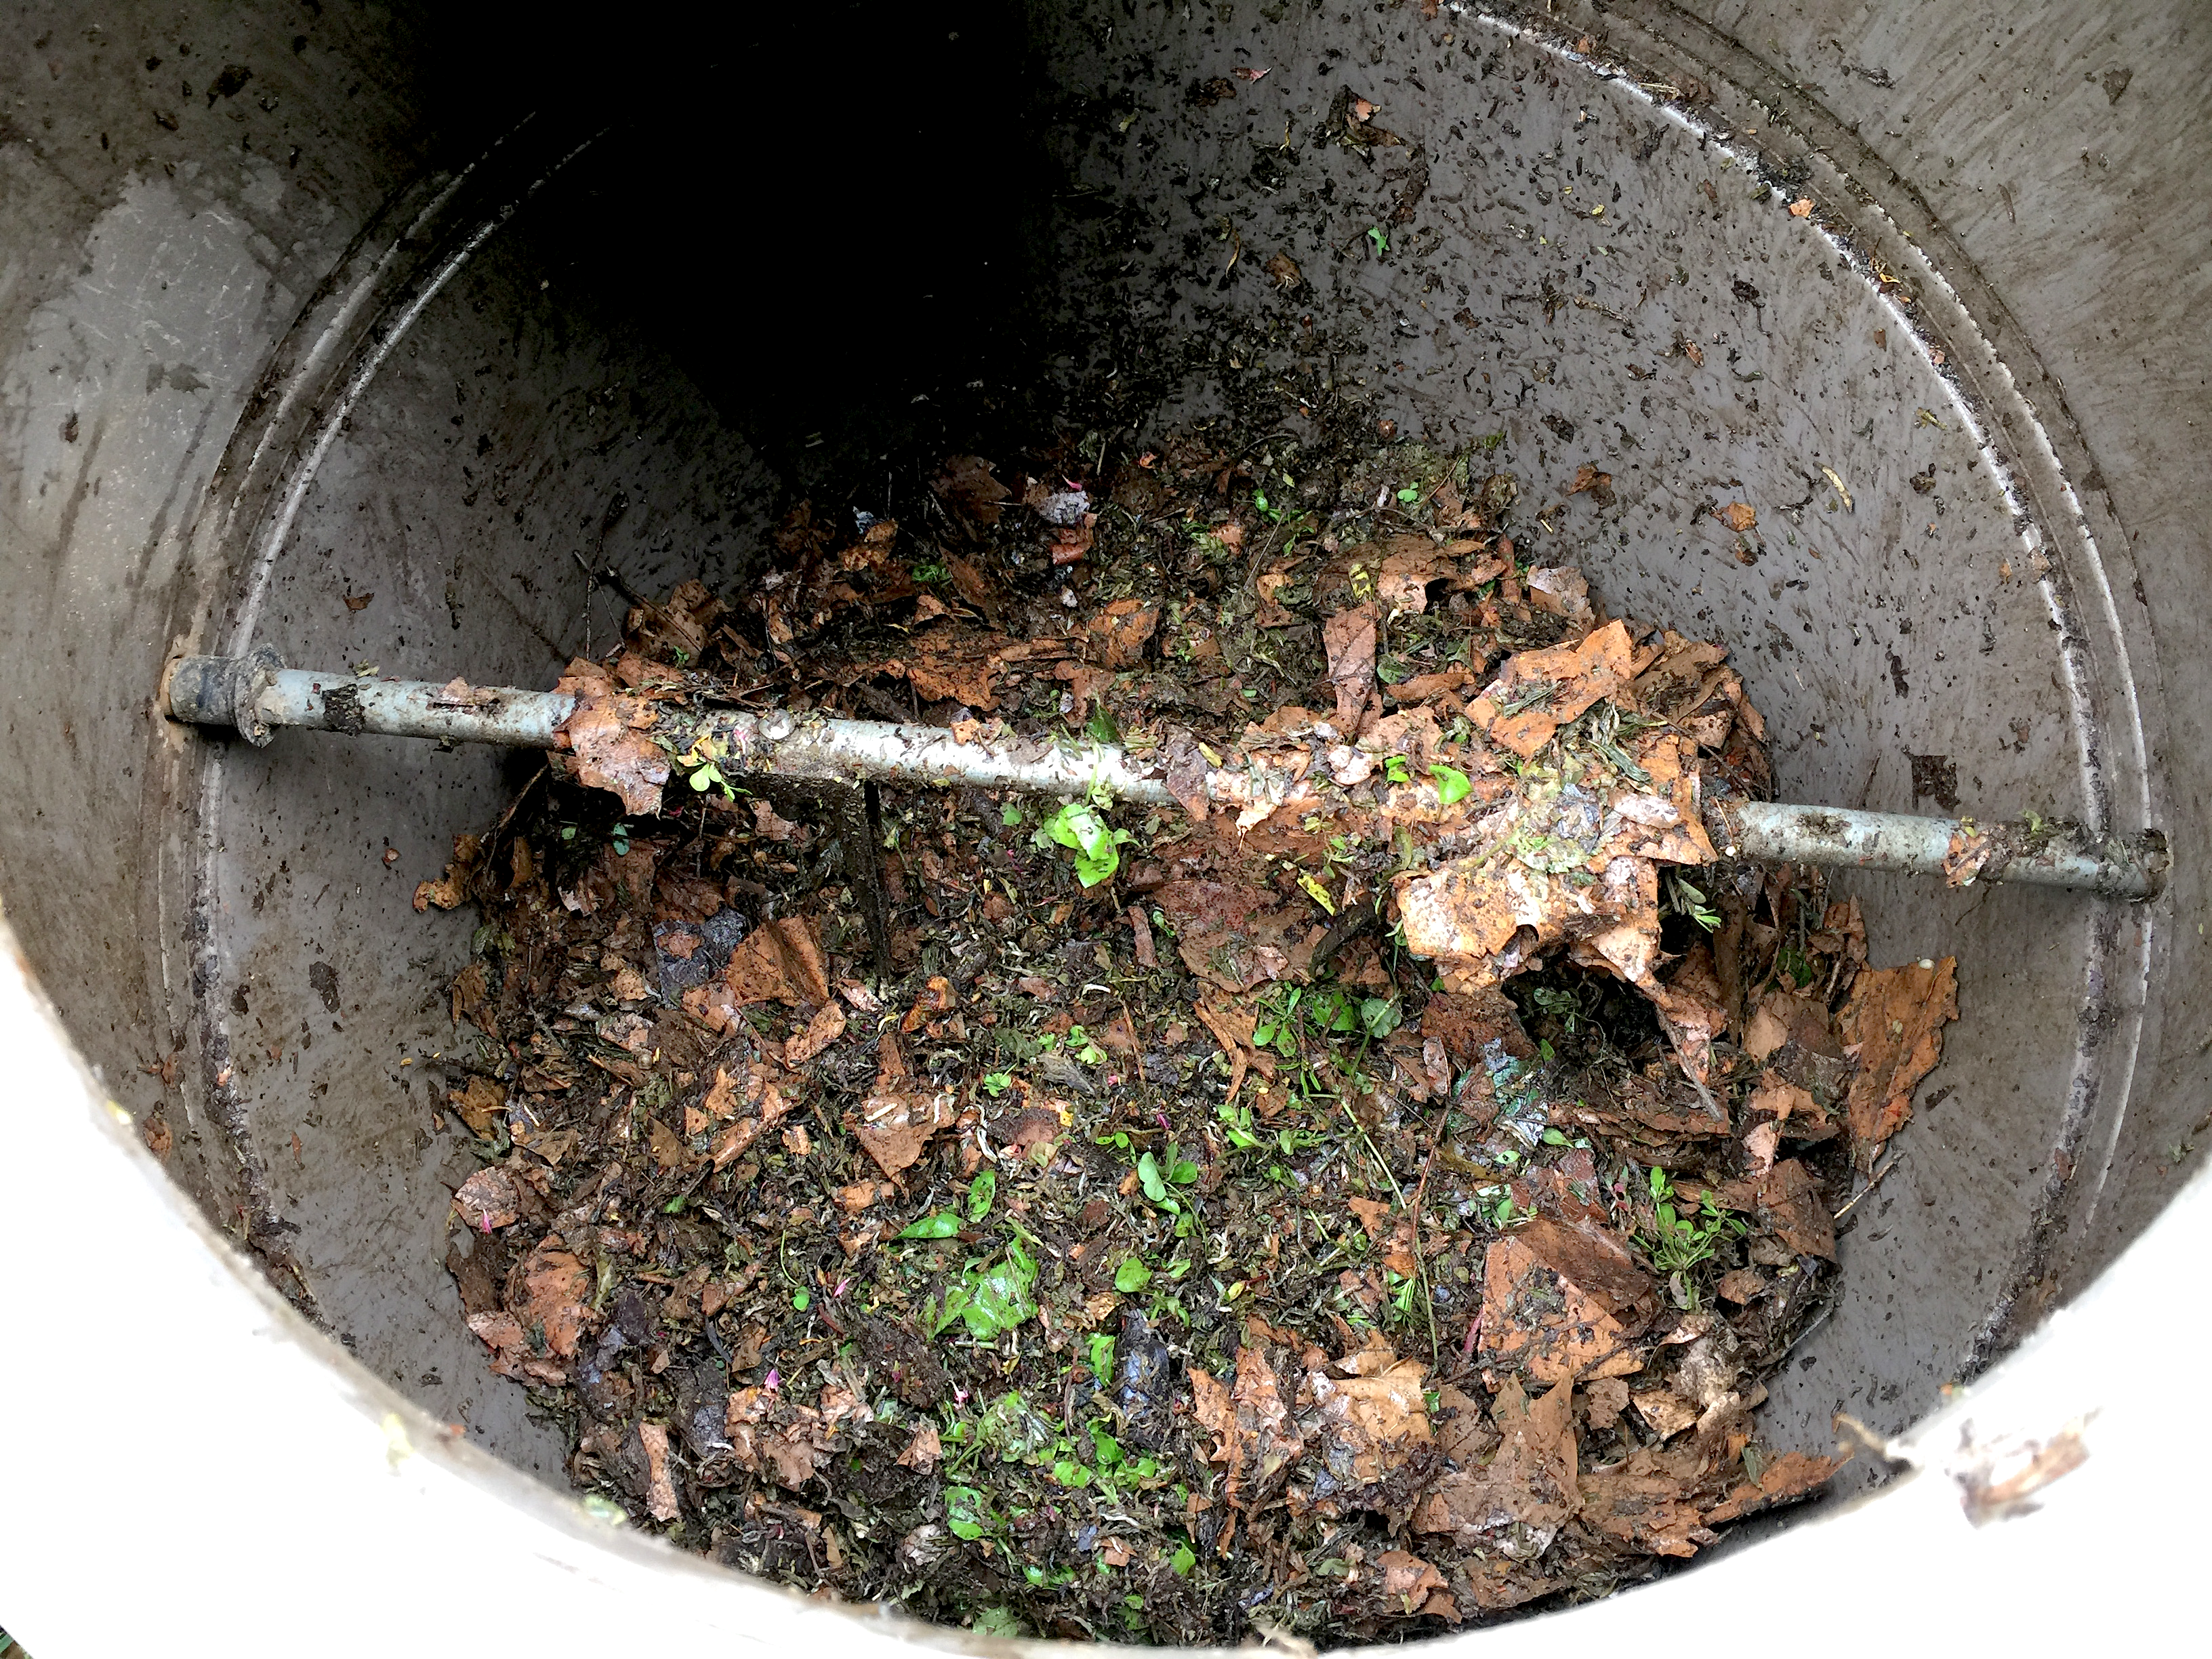 Compost Barrel by Jocilyn Mors is licensed under a Creative Commons Attribution 4.0 International License.